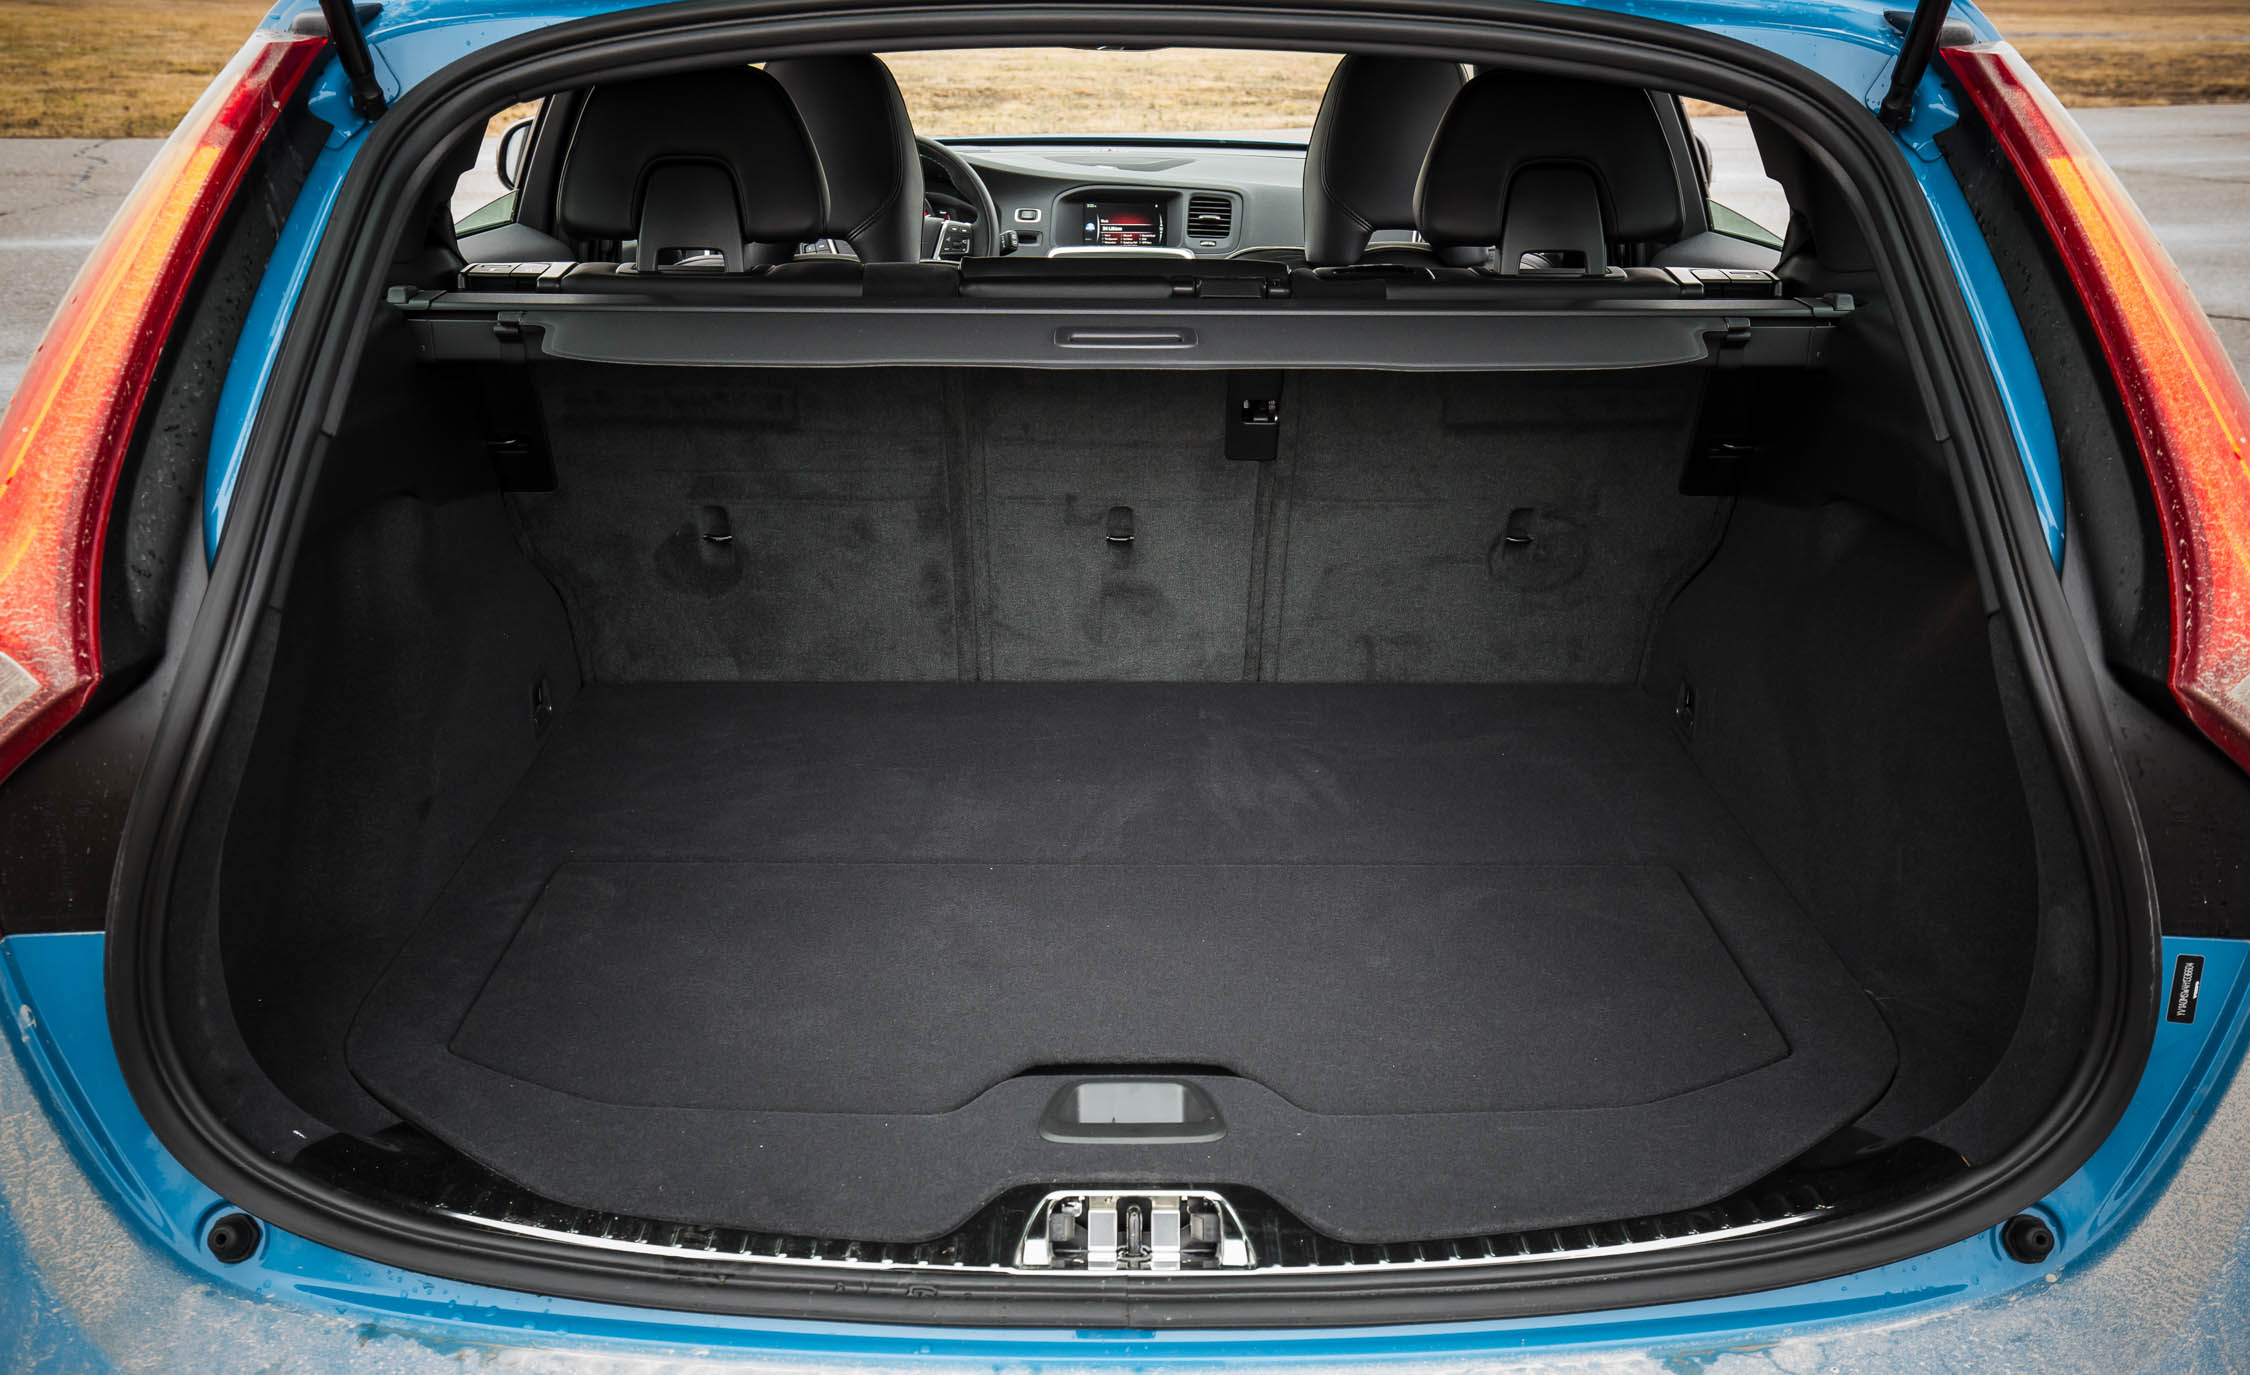 2017 Volvo V60 Polestar Interior View Cargo (Photo 29 of 53)